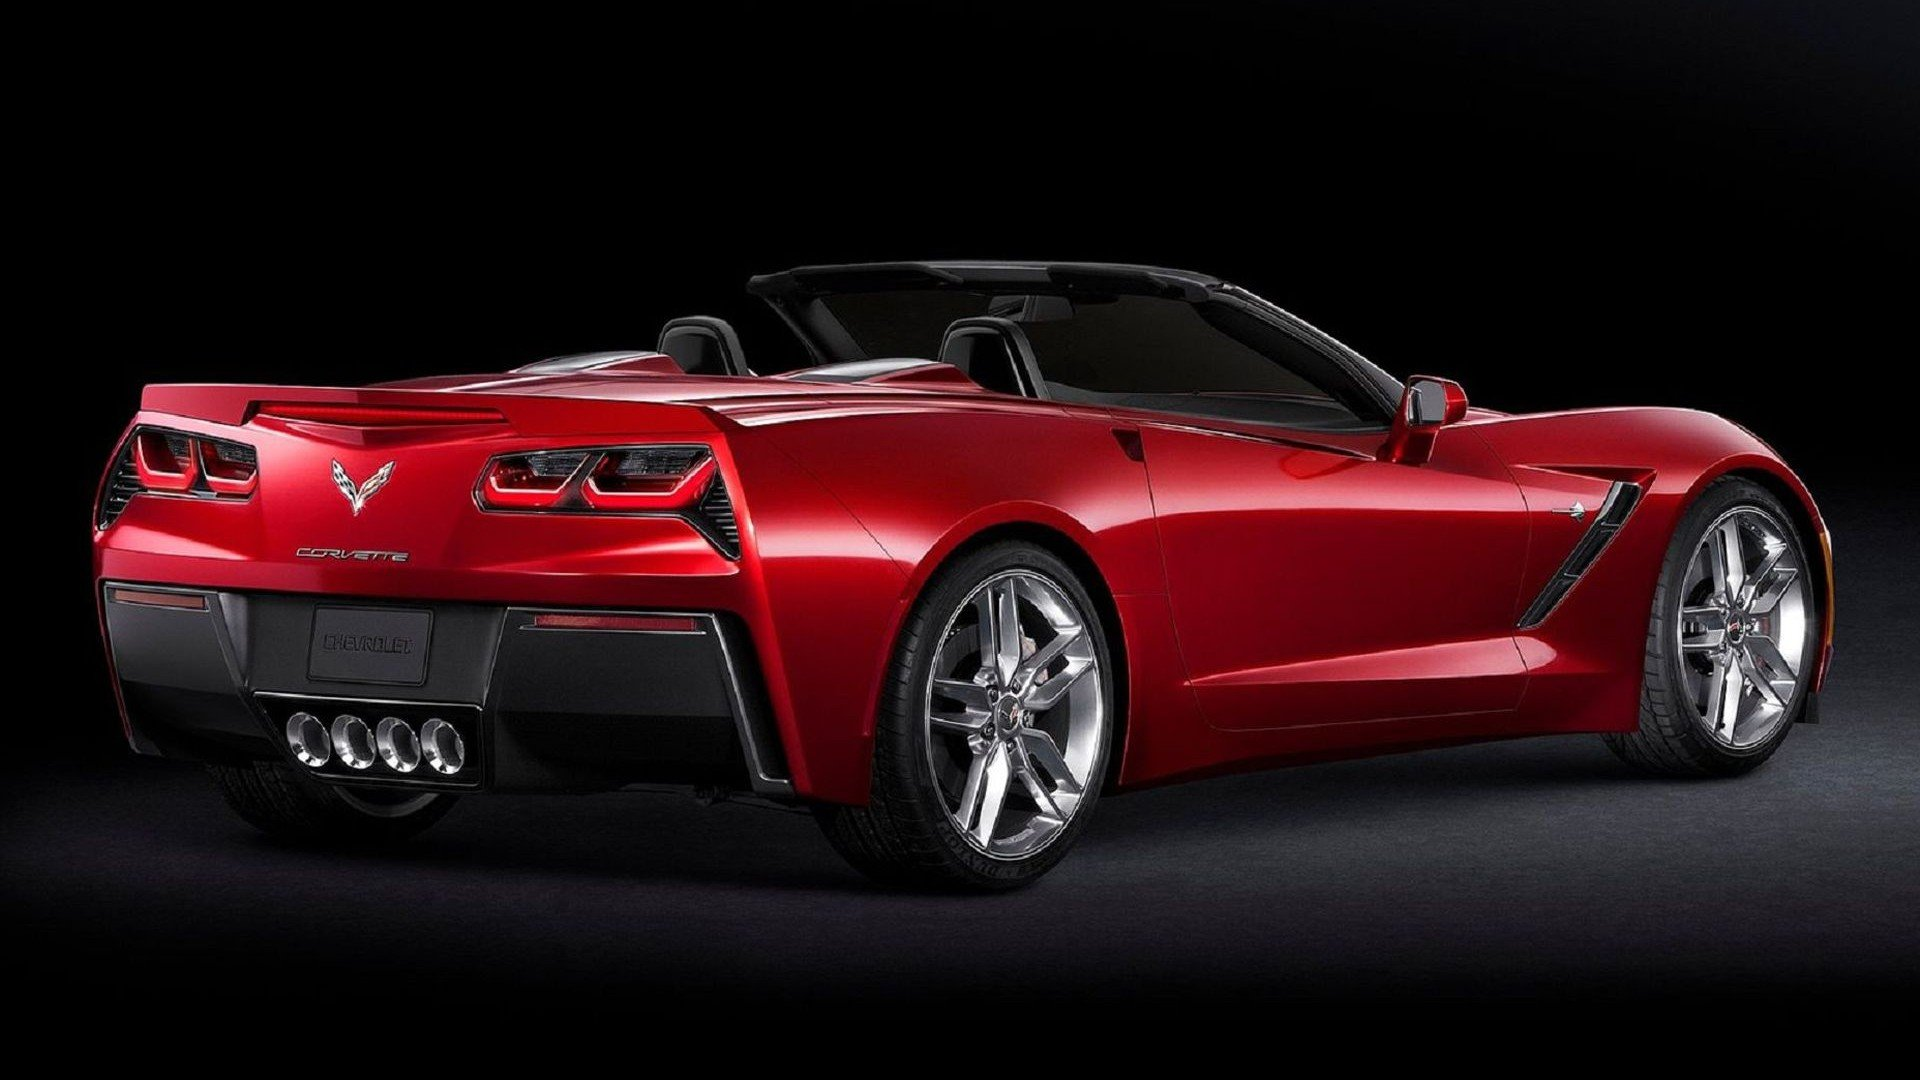 C7 CORVETTE Cars HD Wallpapers Pictures Hd Wallpapers 1920x1080